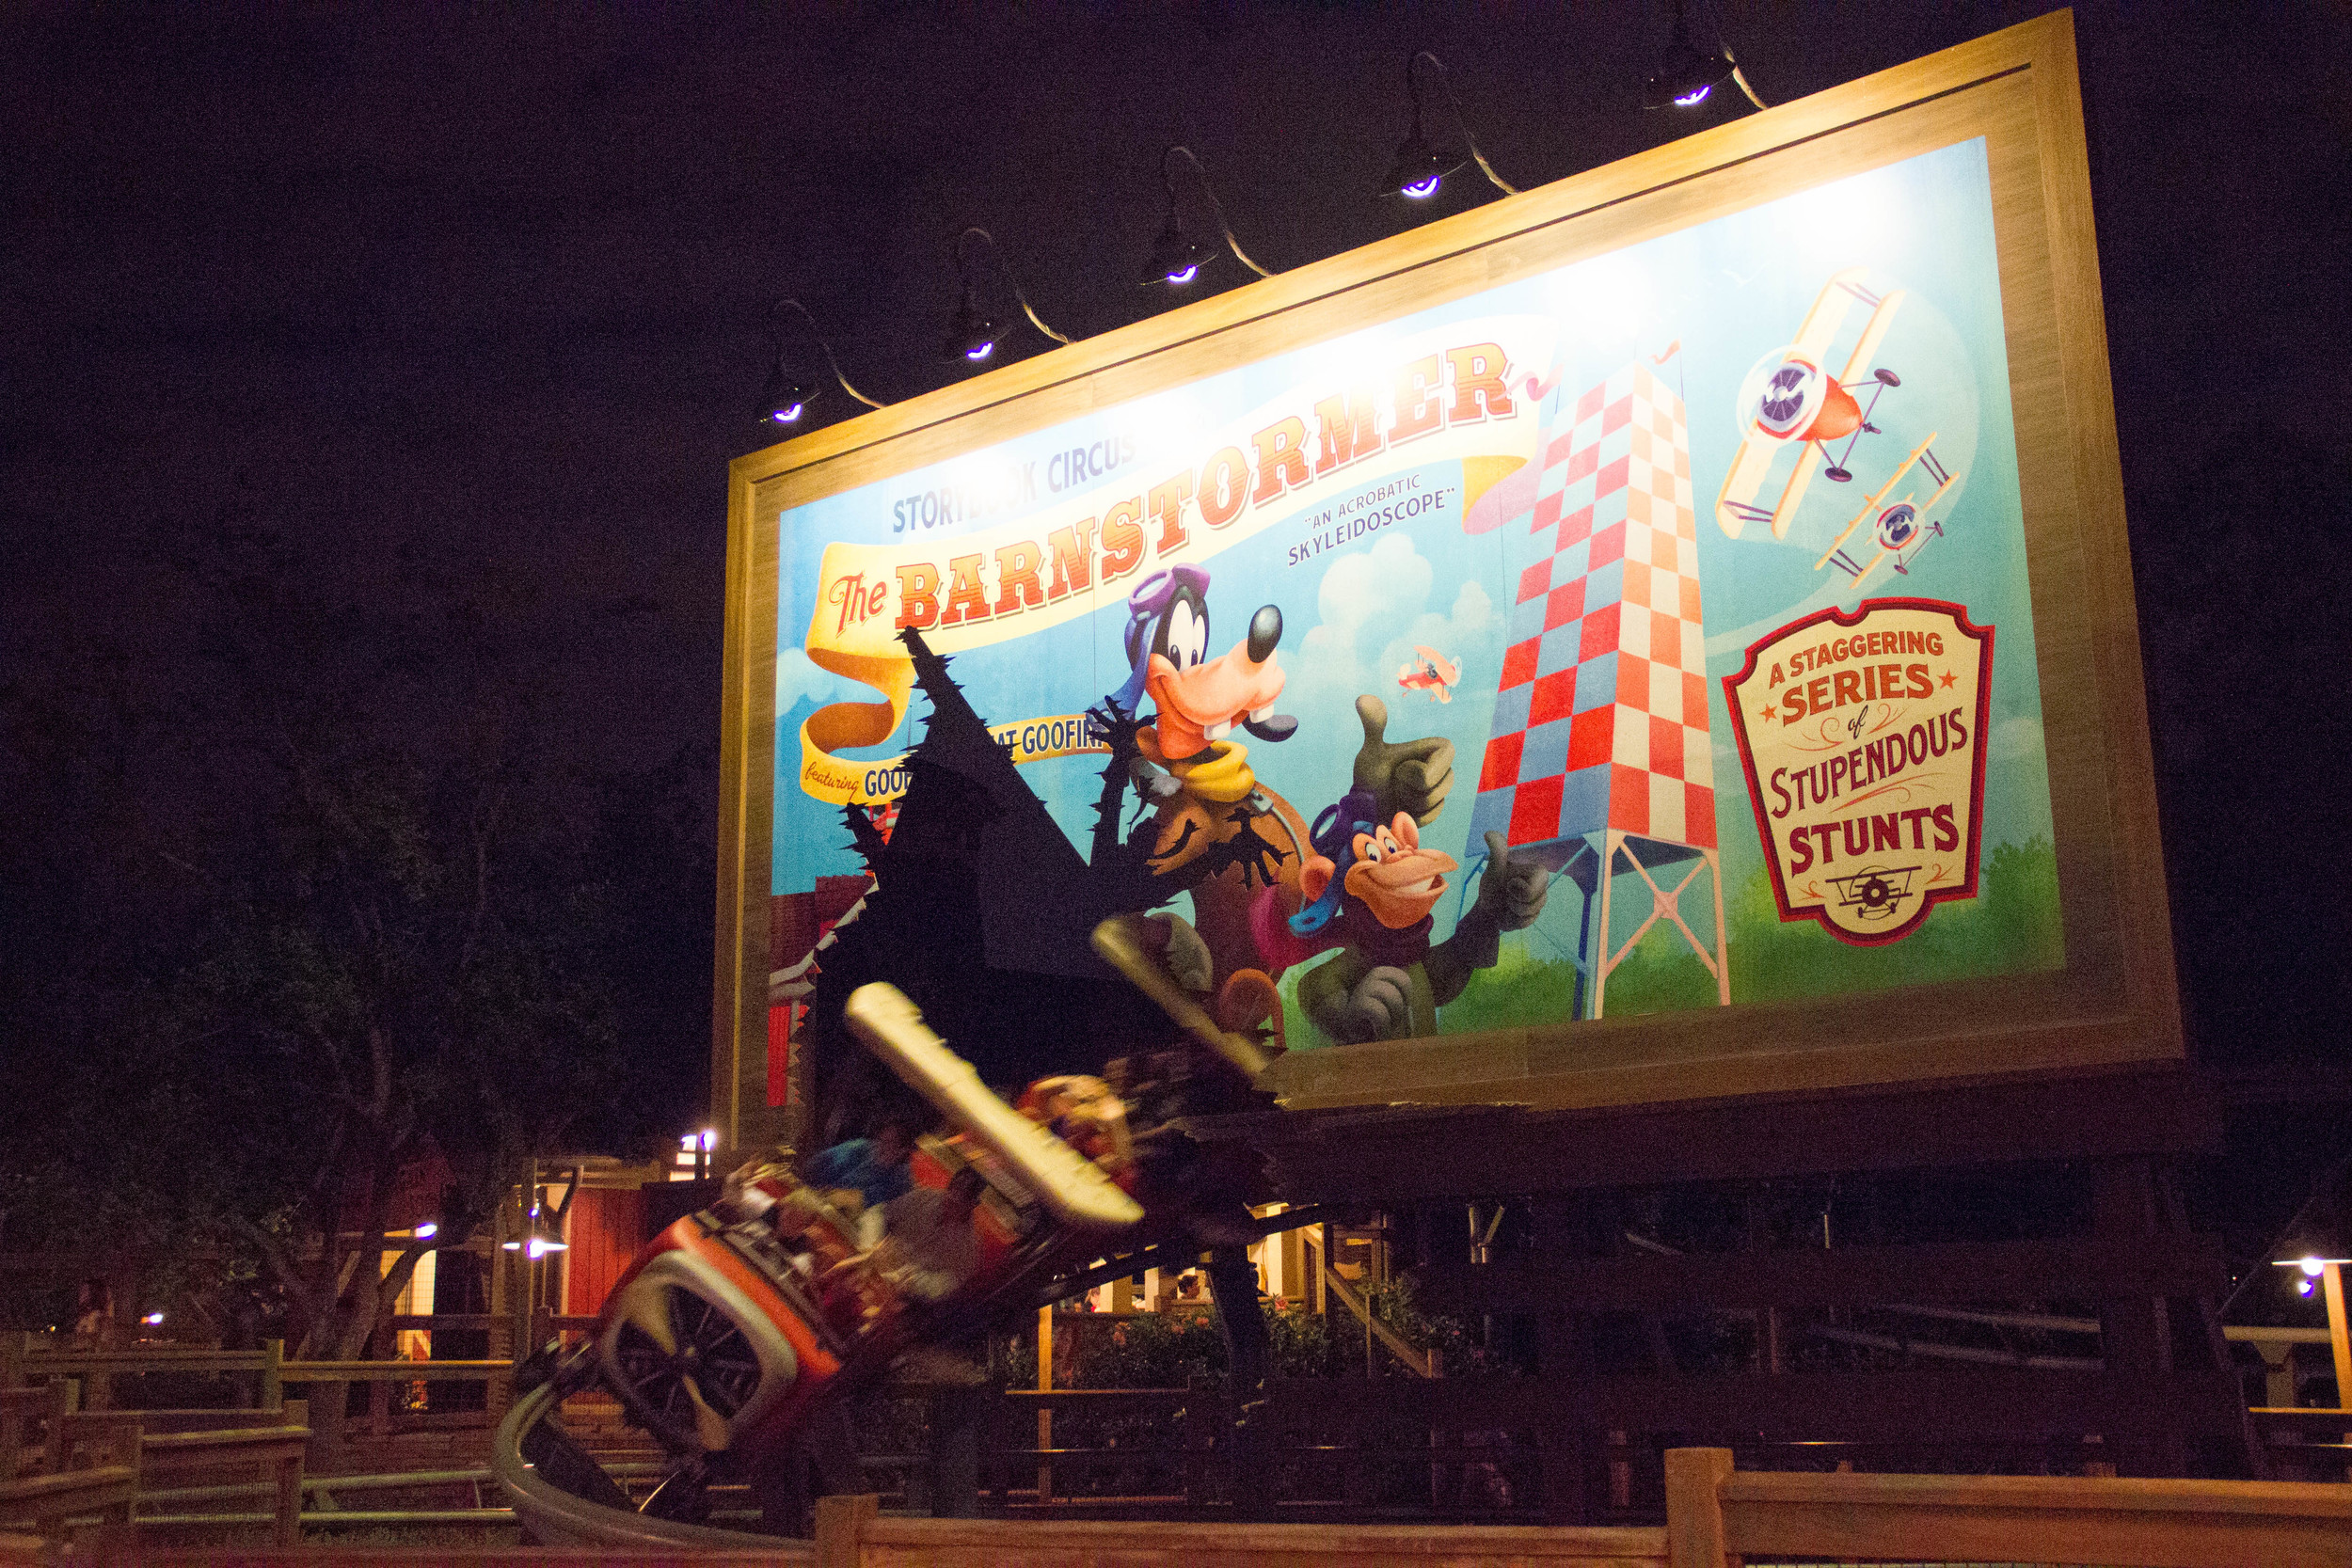 I love the idea of the coaster busting through the billboard